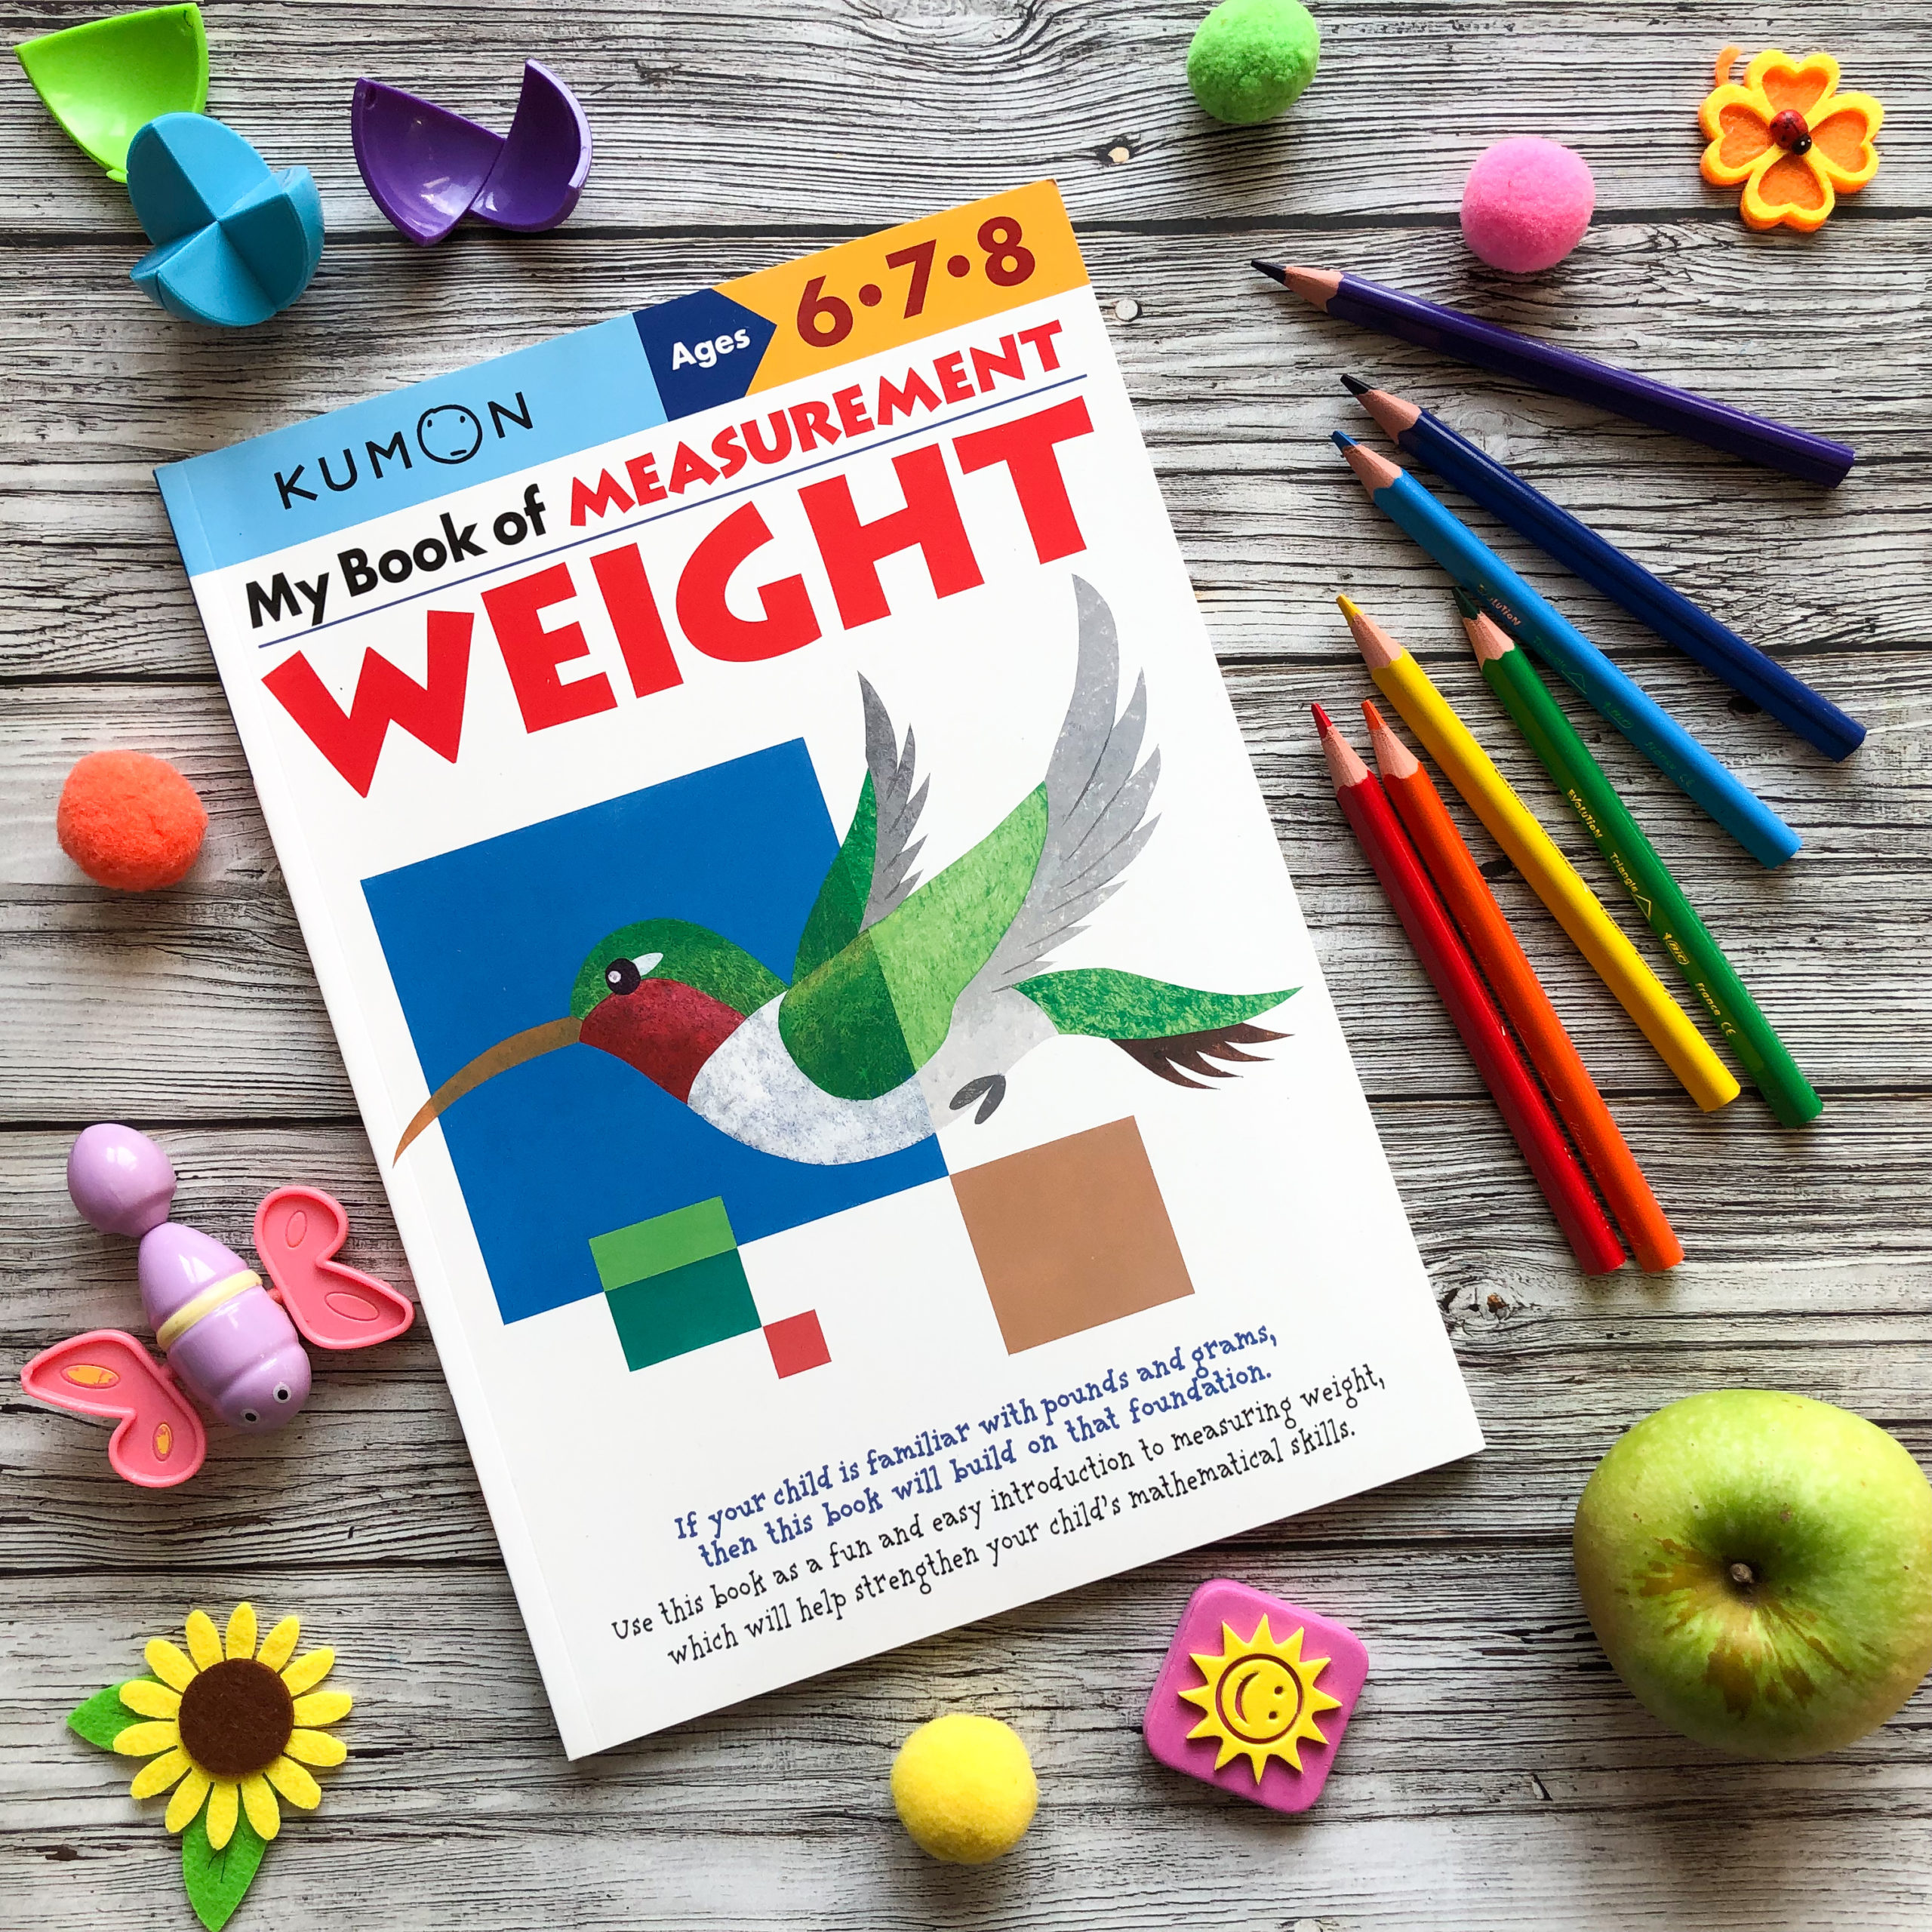 My Book Of Measurement: Weight, 6-8